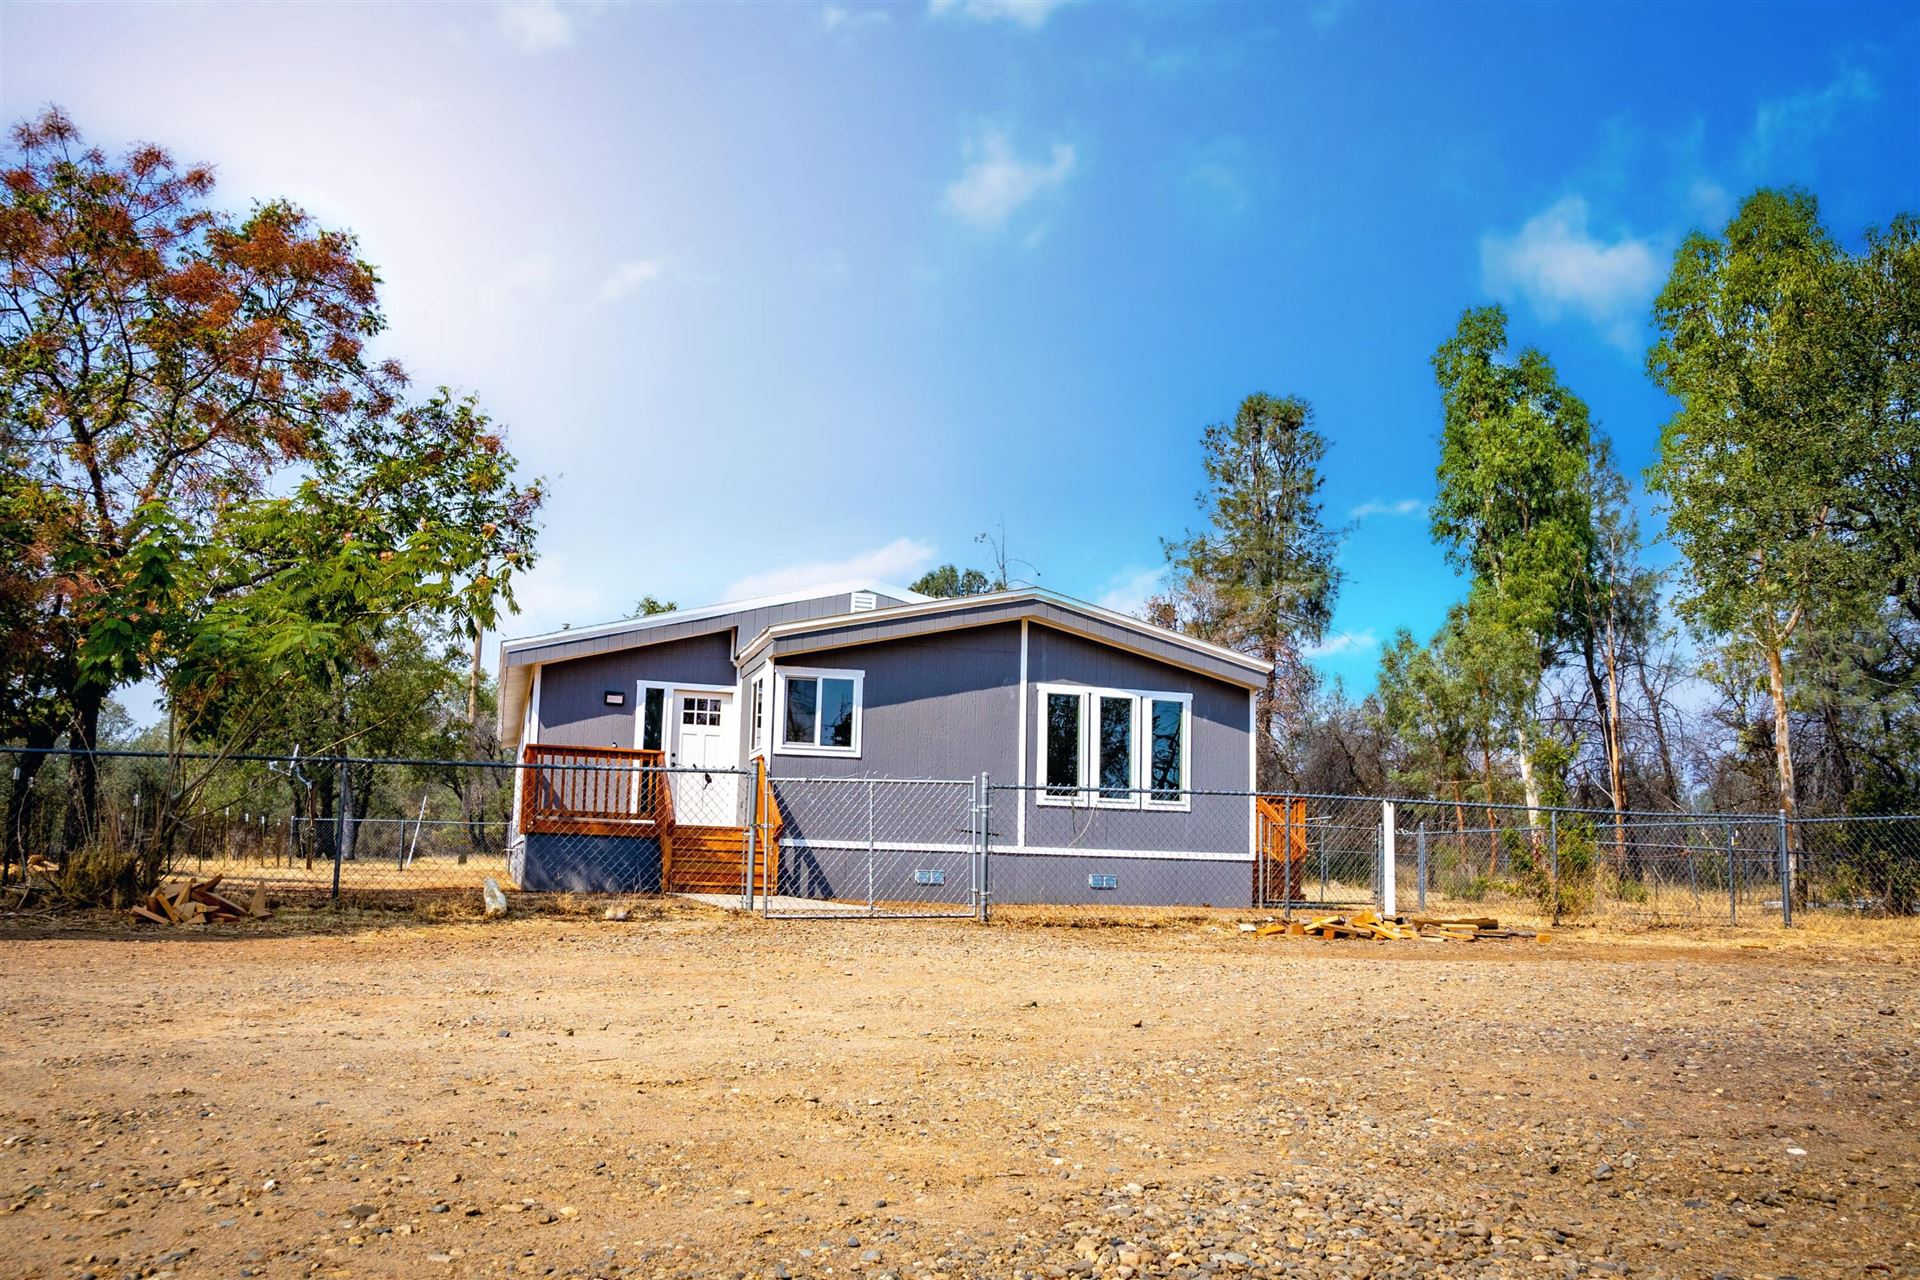 Photo of 16743 Blue Horse Rd, Anderson, CA 96007 (MLS # 21-4414)